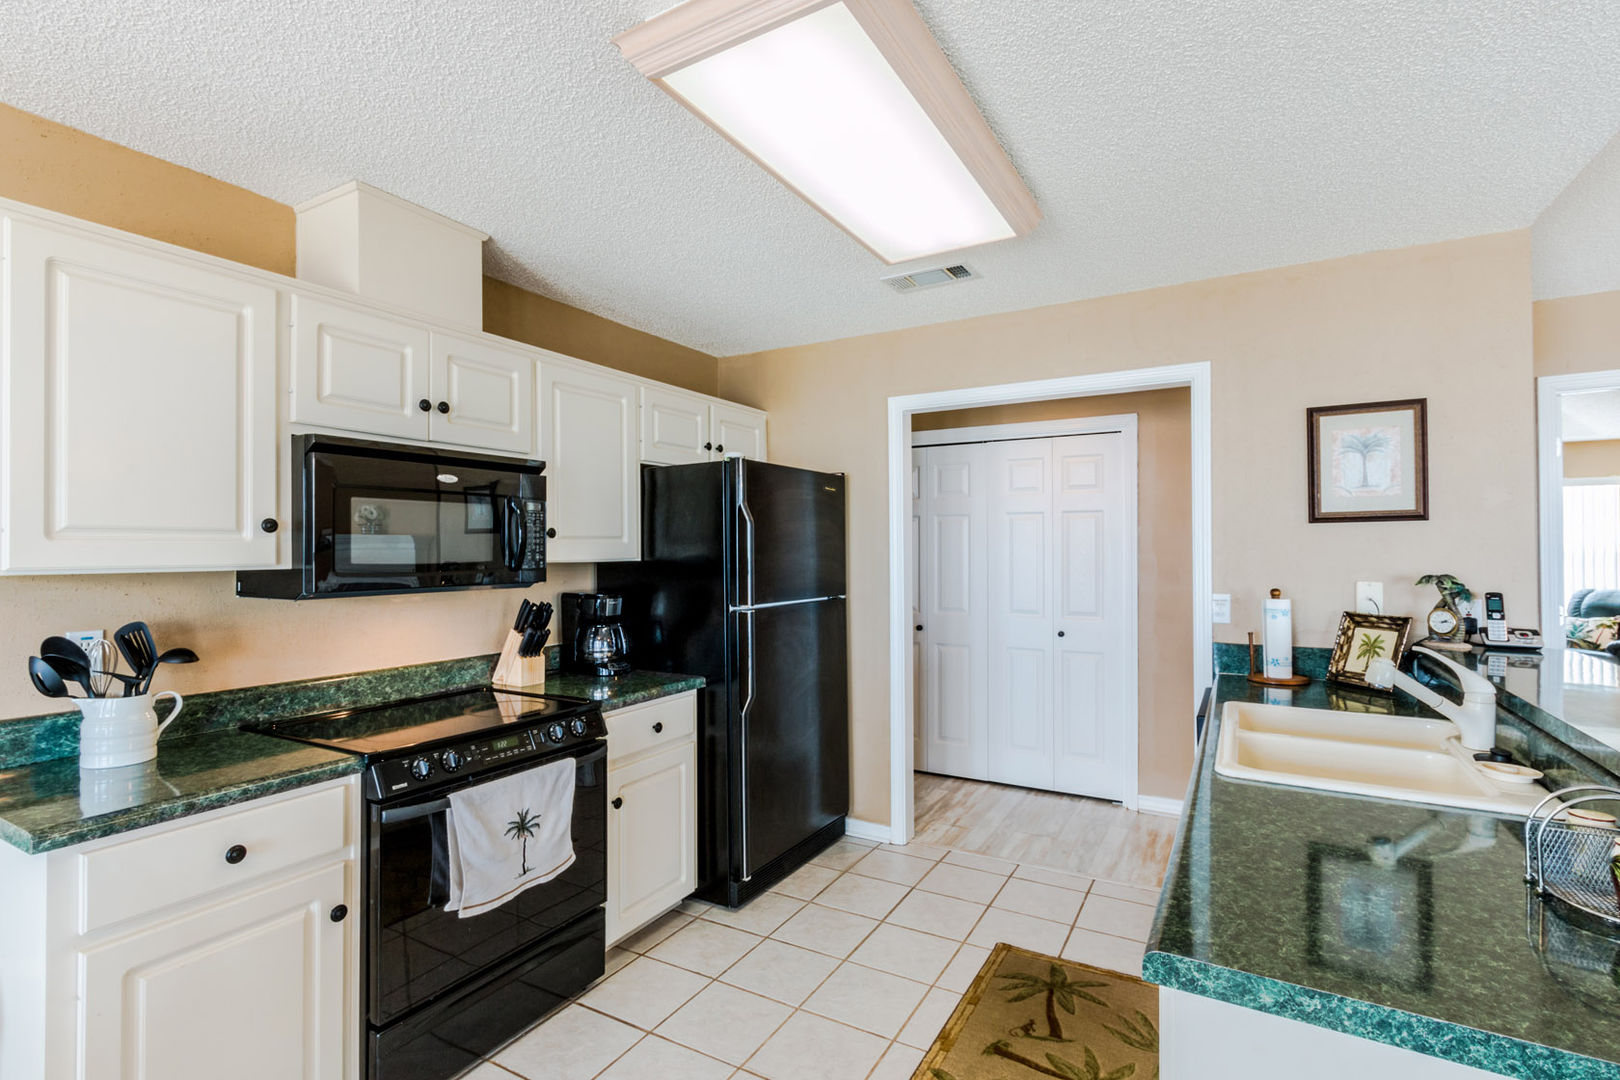 Open Kitchen Area with modern appliances.